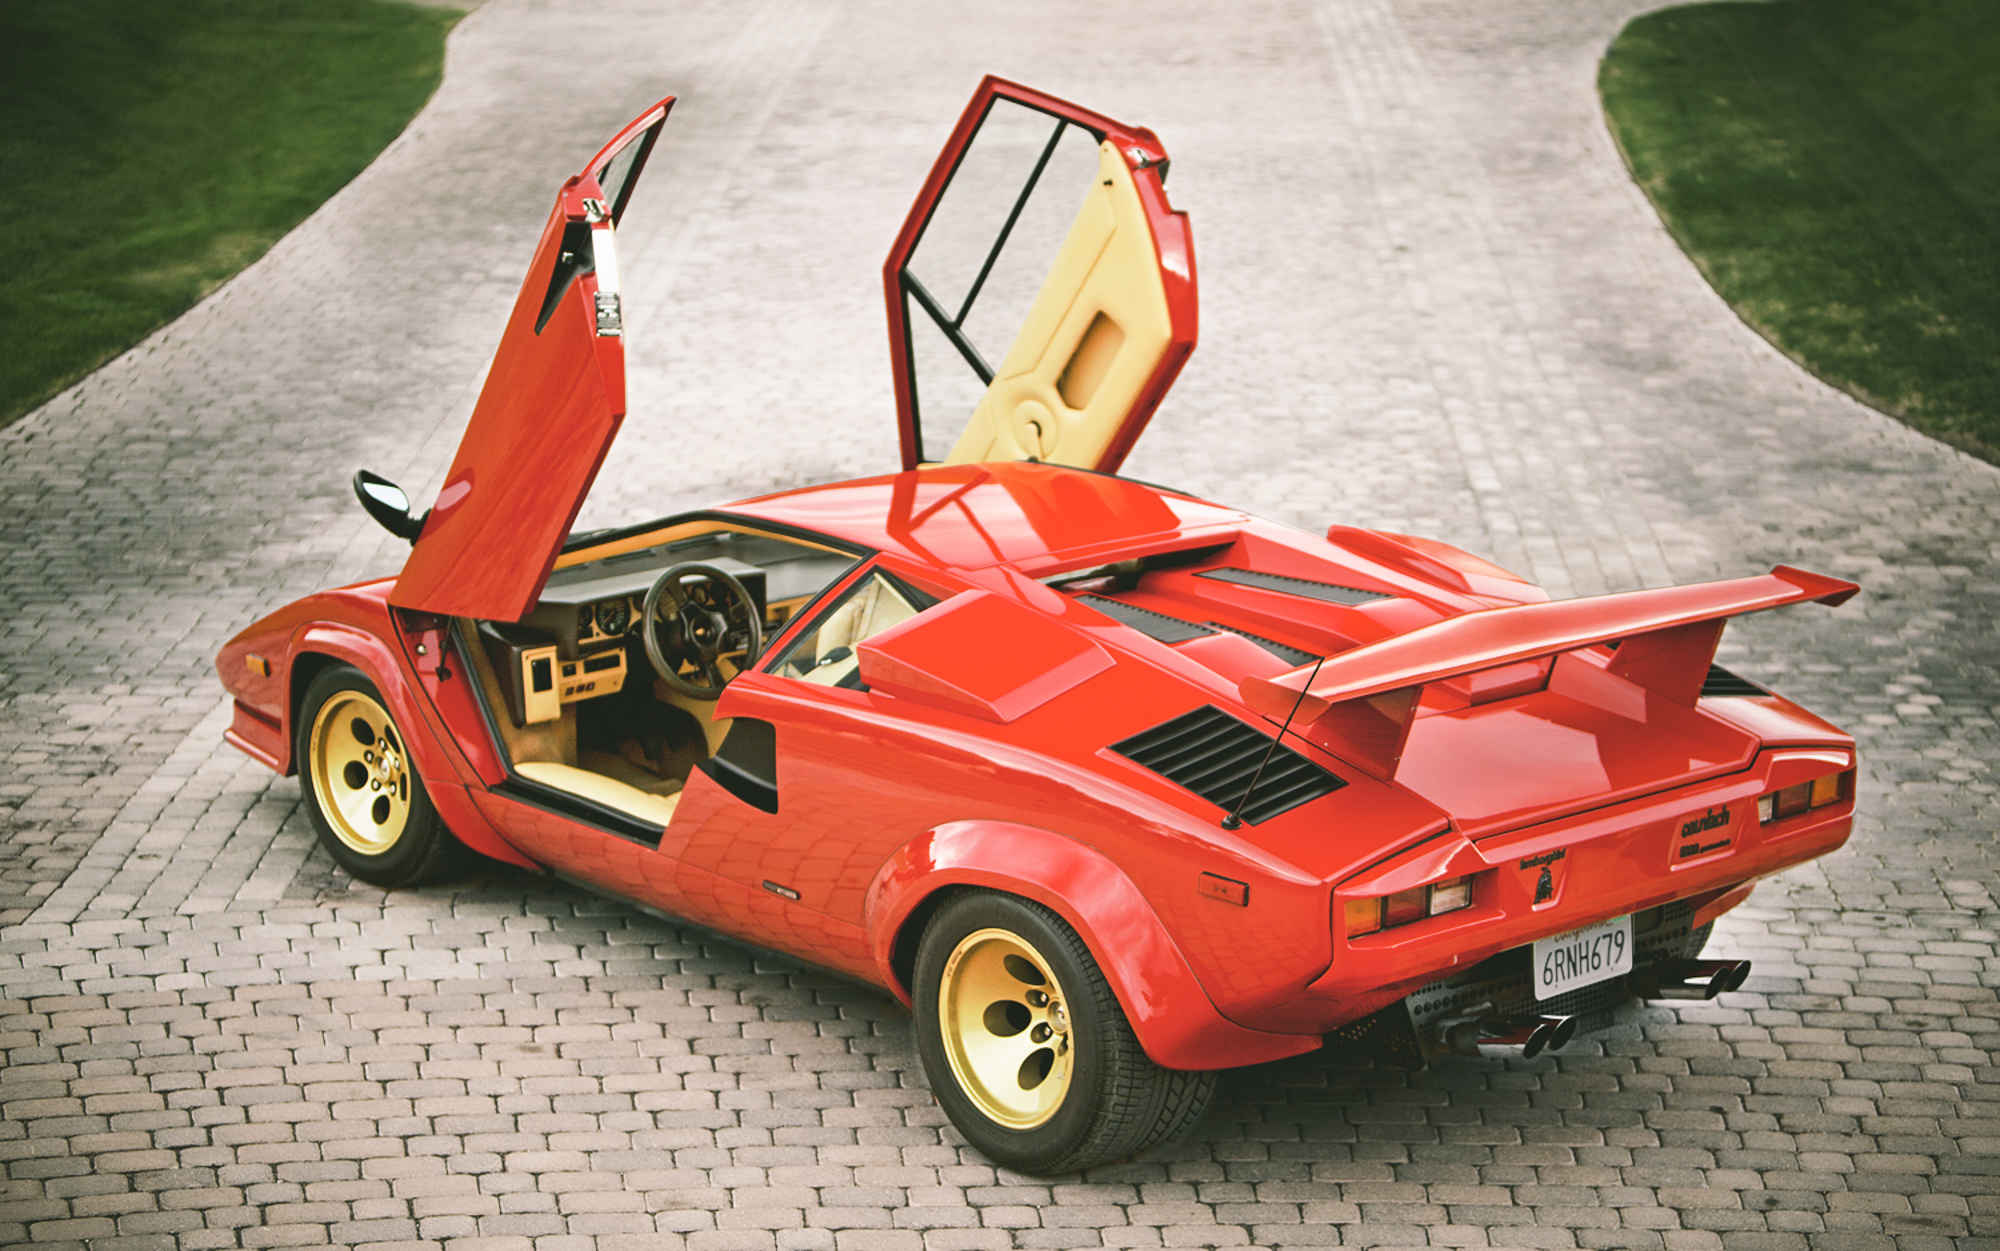 15 Cool Facts About Lamborghini You Did Not Know Before